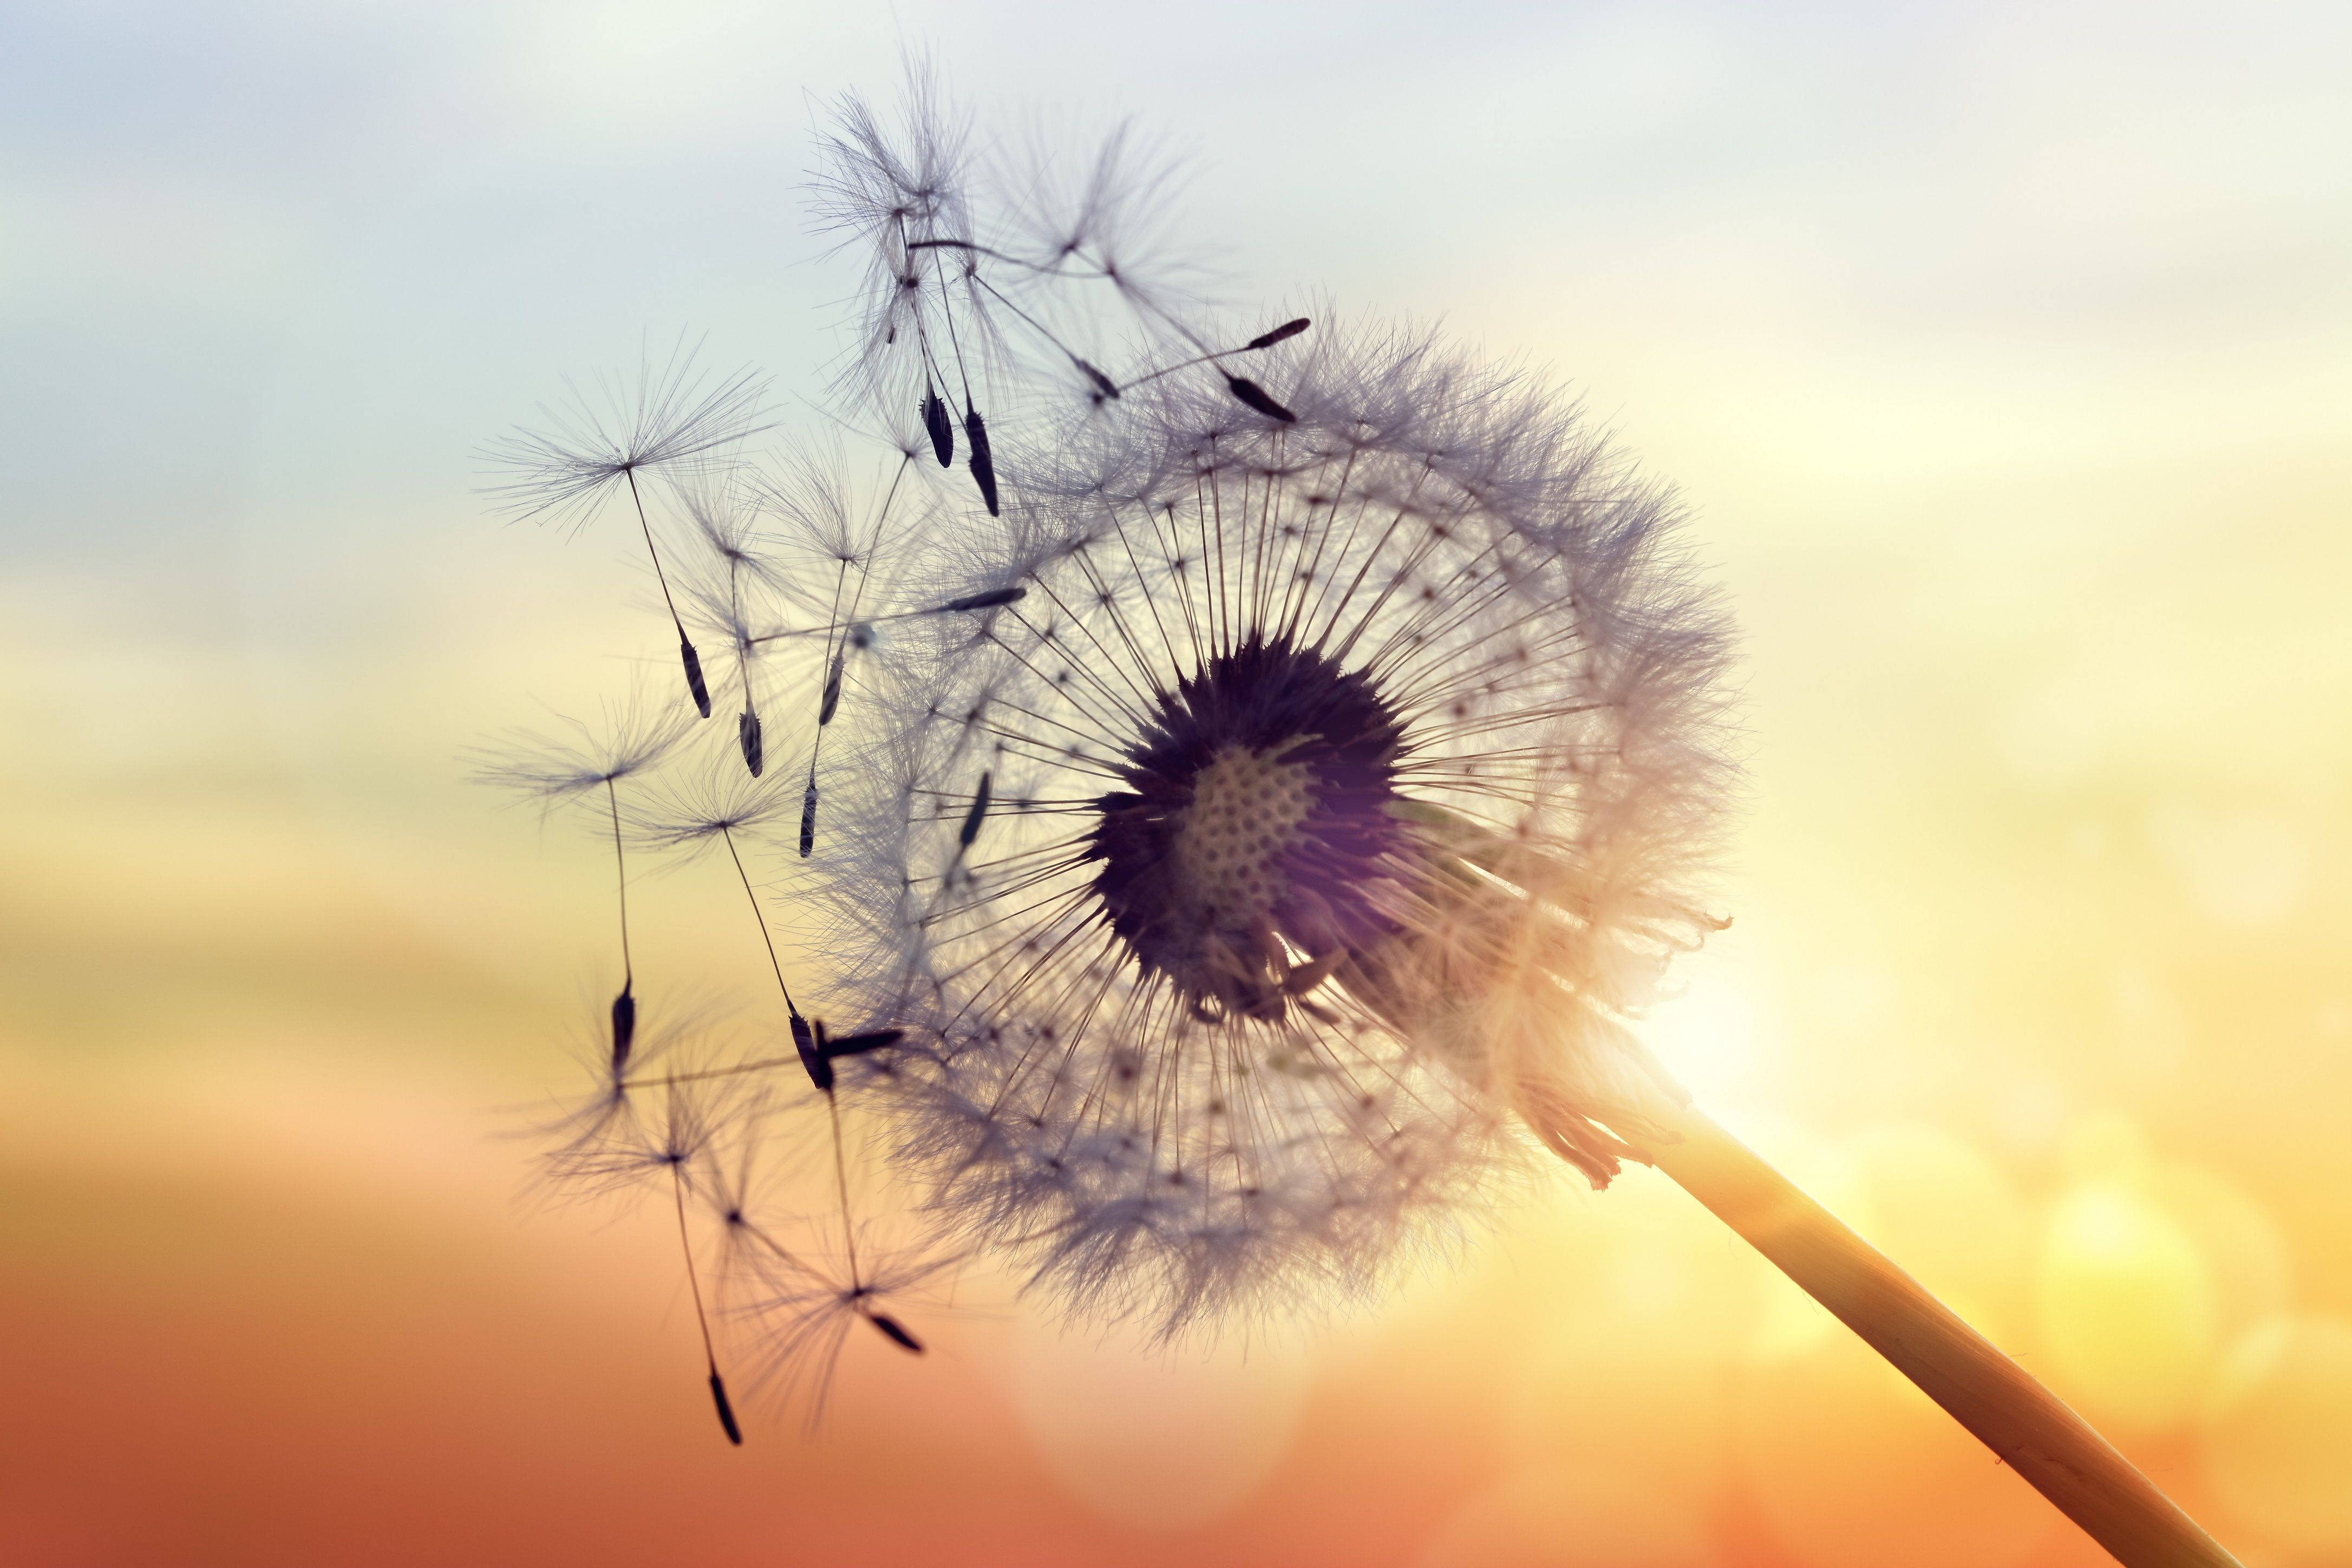 Allergy To Food Plants Pets And More Ask Your Genes Askyourgenes Dnatest Genomics Health Wellness Allergy Dandelion Dandelion Flower Relaxing Music